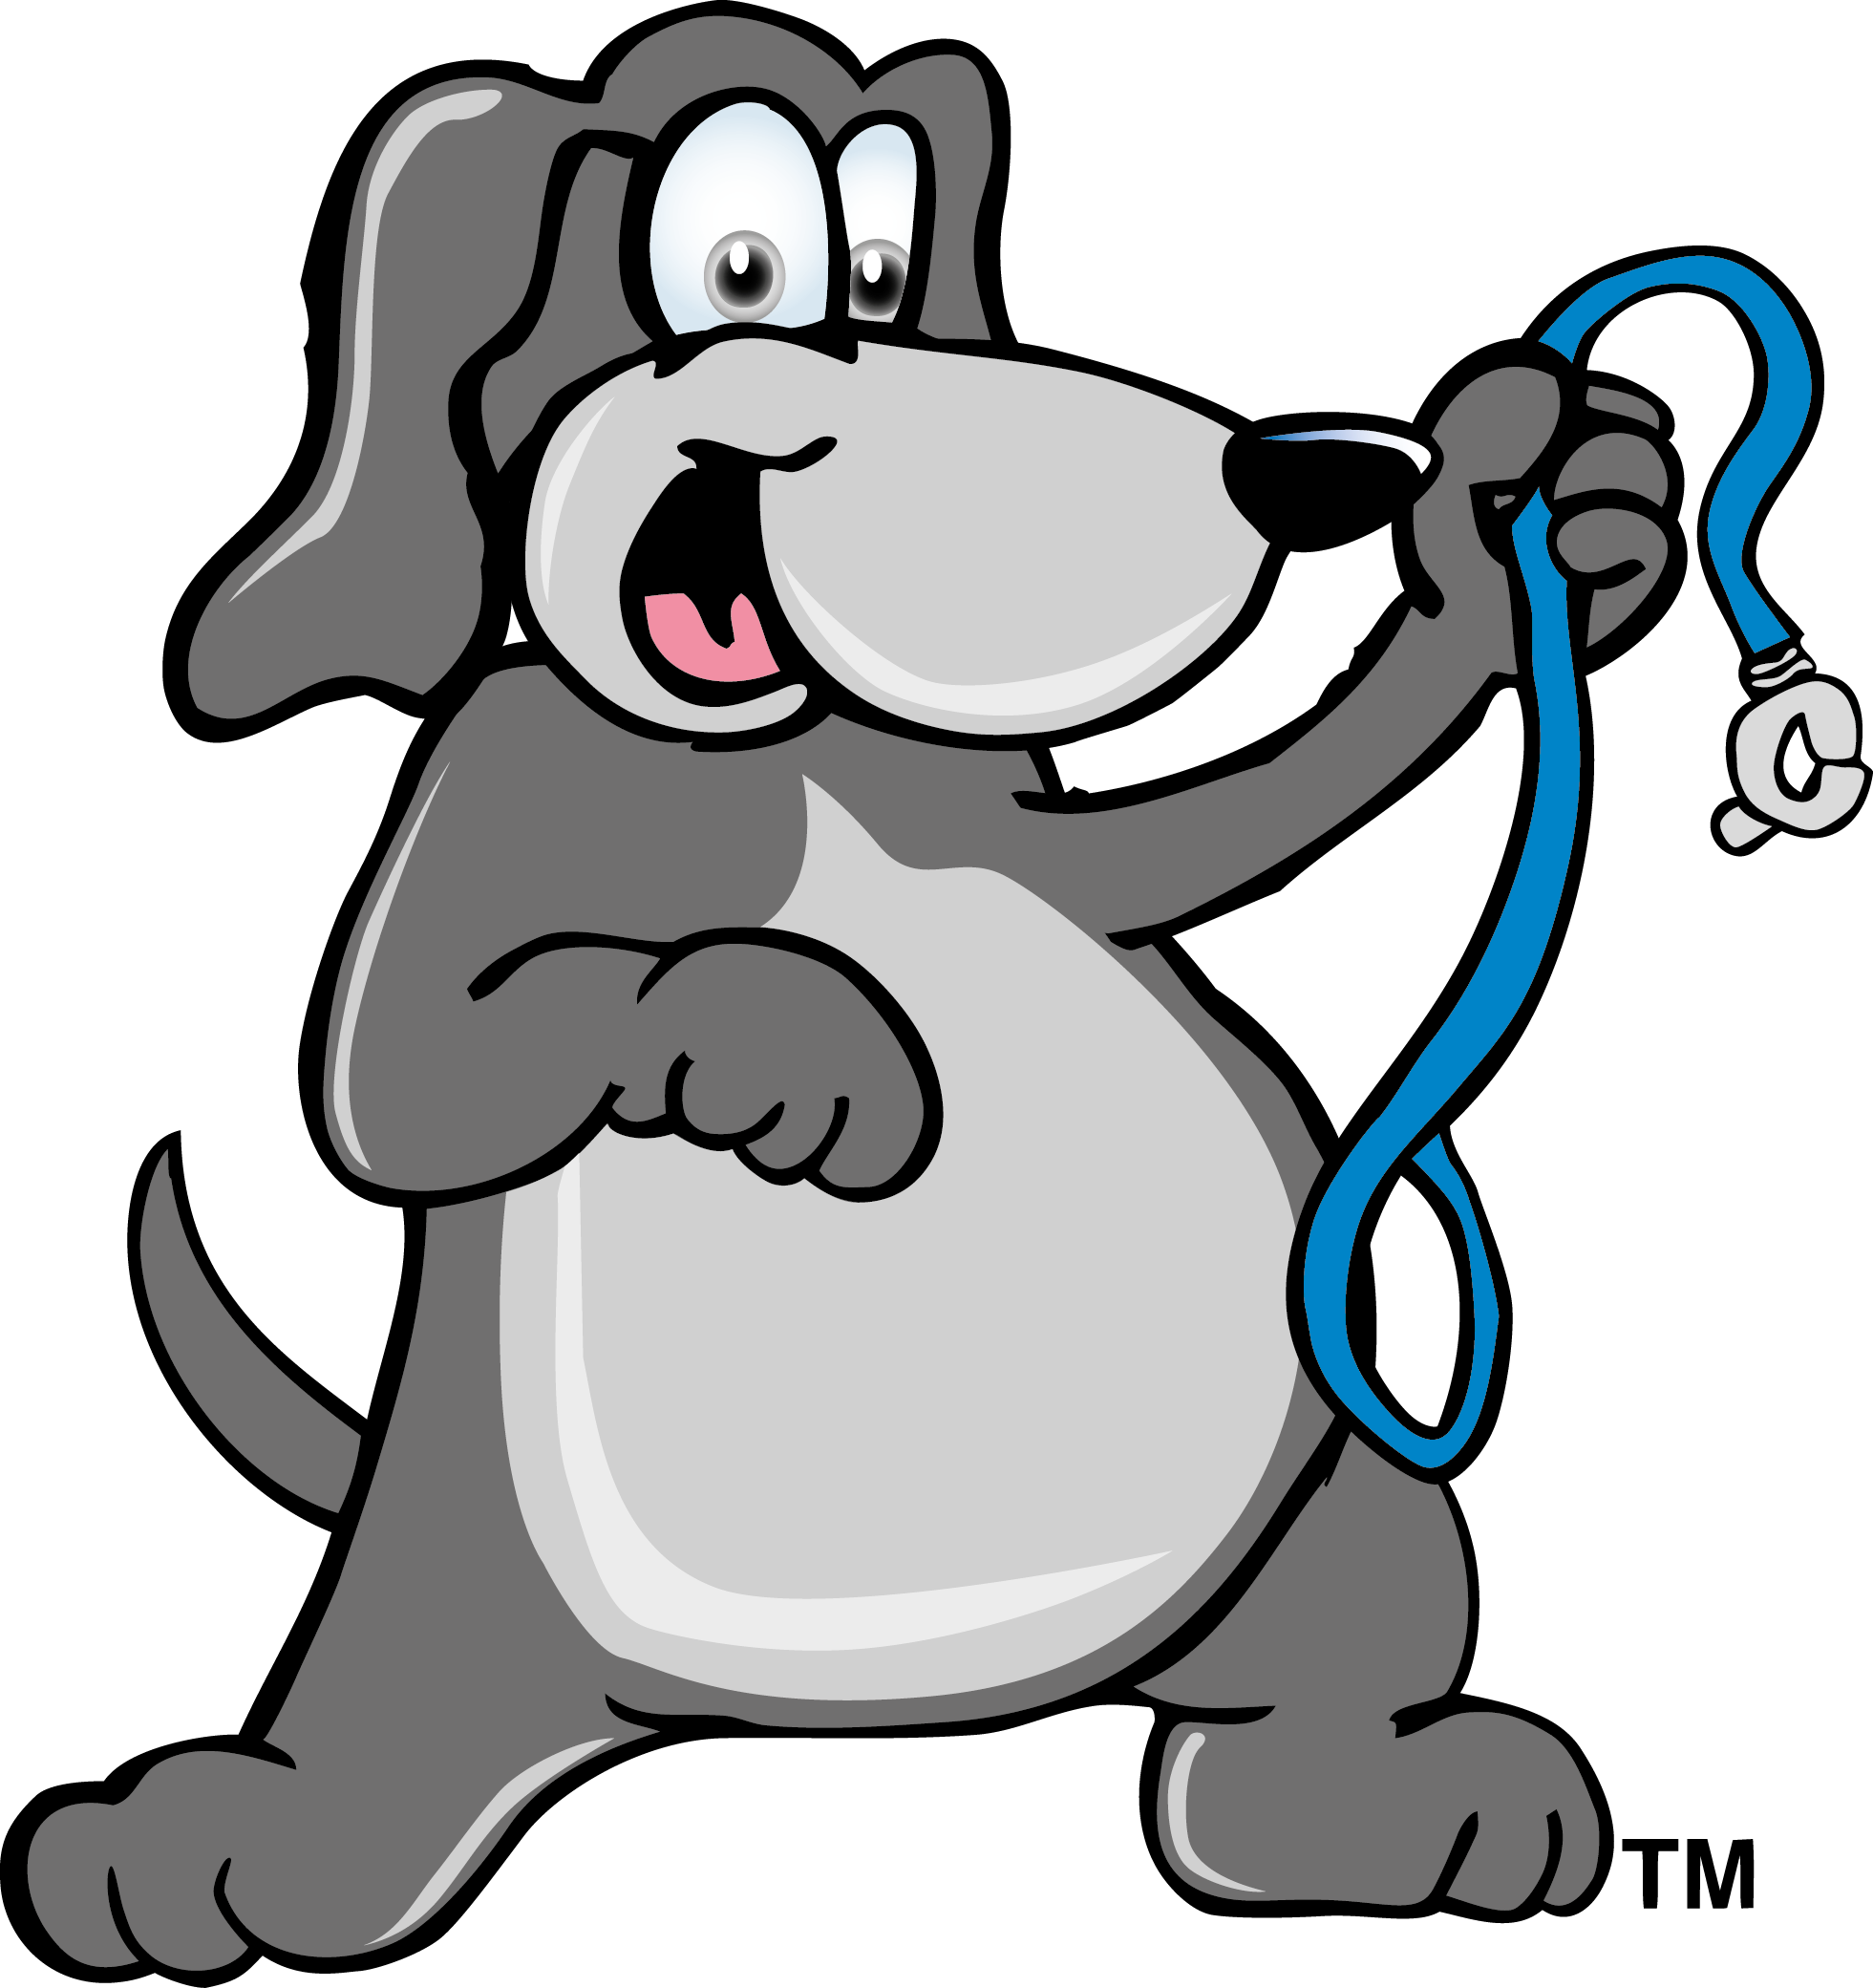 Dog with leash clipart jpg black and white library Fat dog with a leash - Haven Lake Animal Hospital | Haven Lake ... jpg black and white library